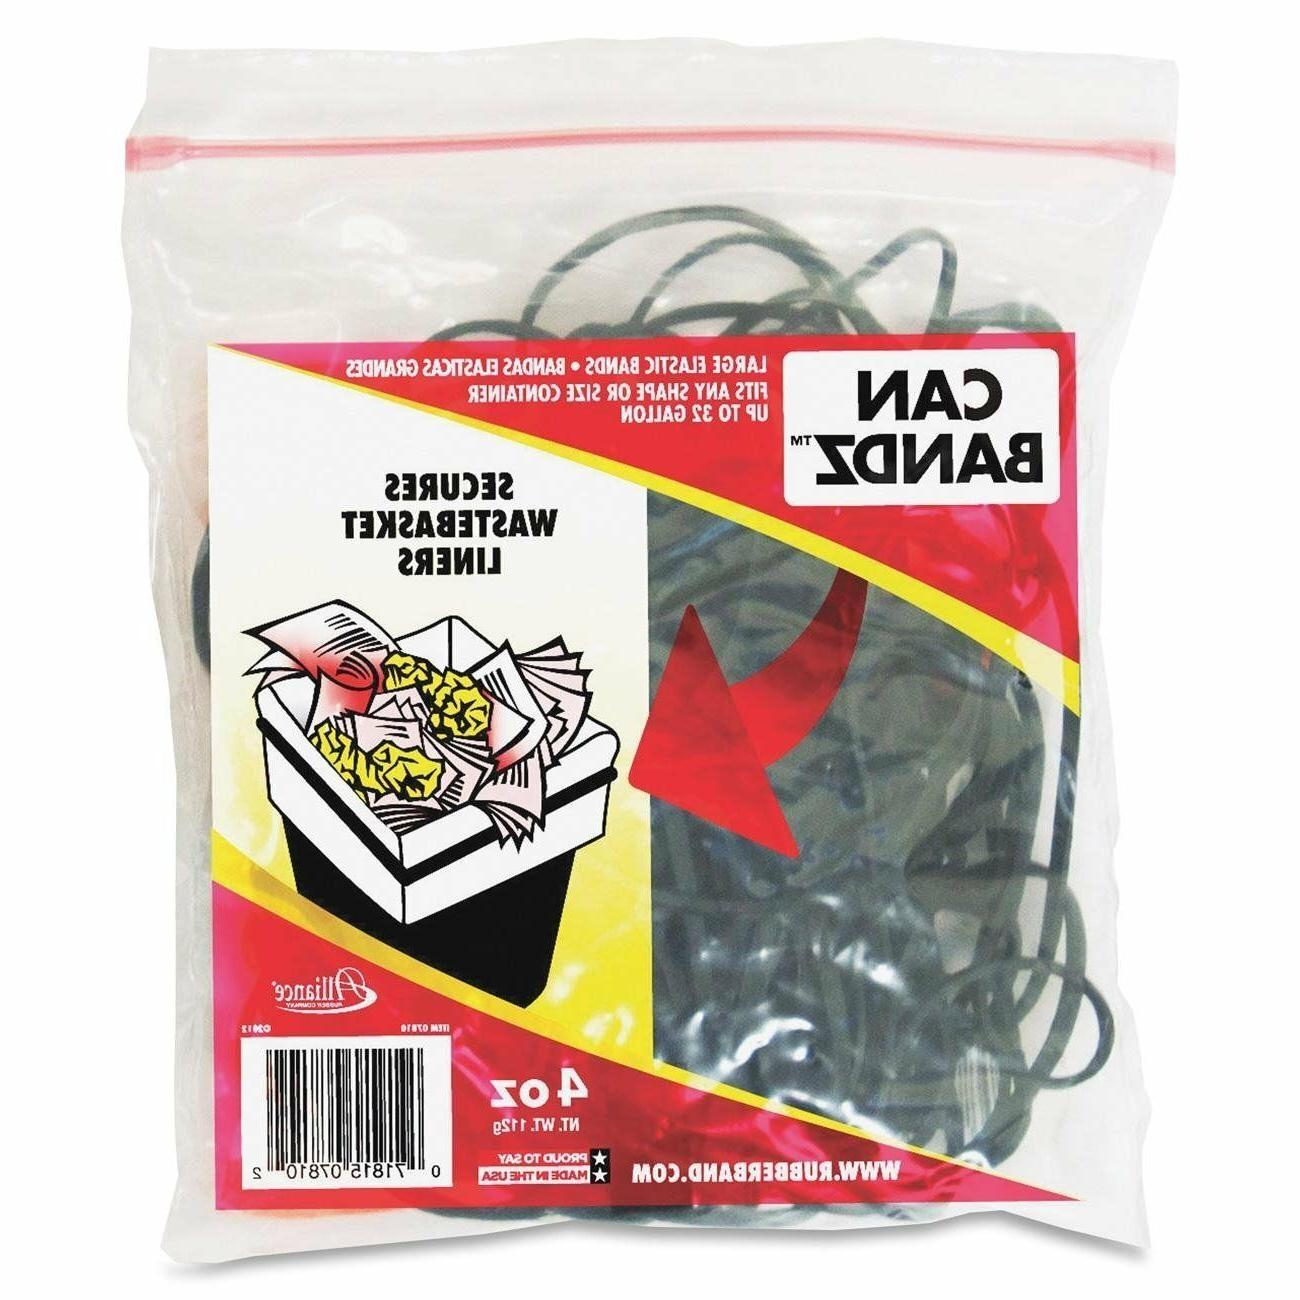 alliance rubber can bands 7 inchx 12